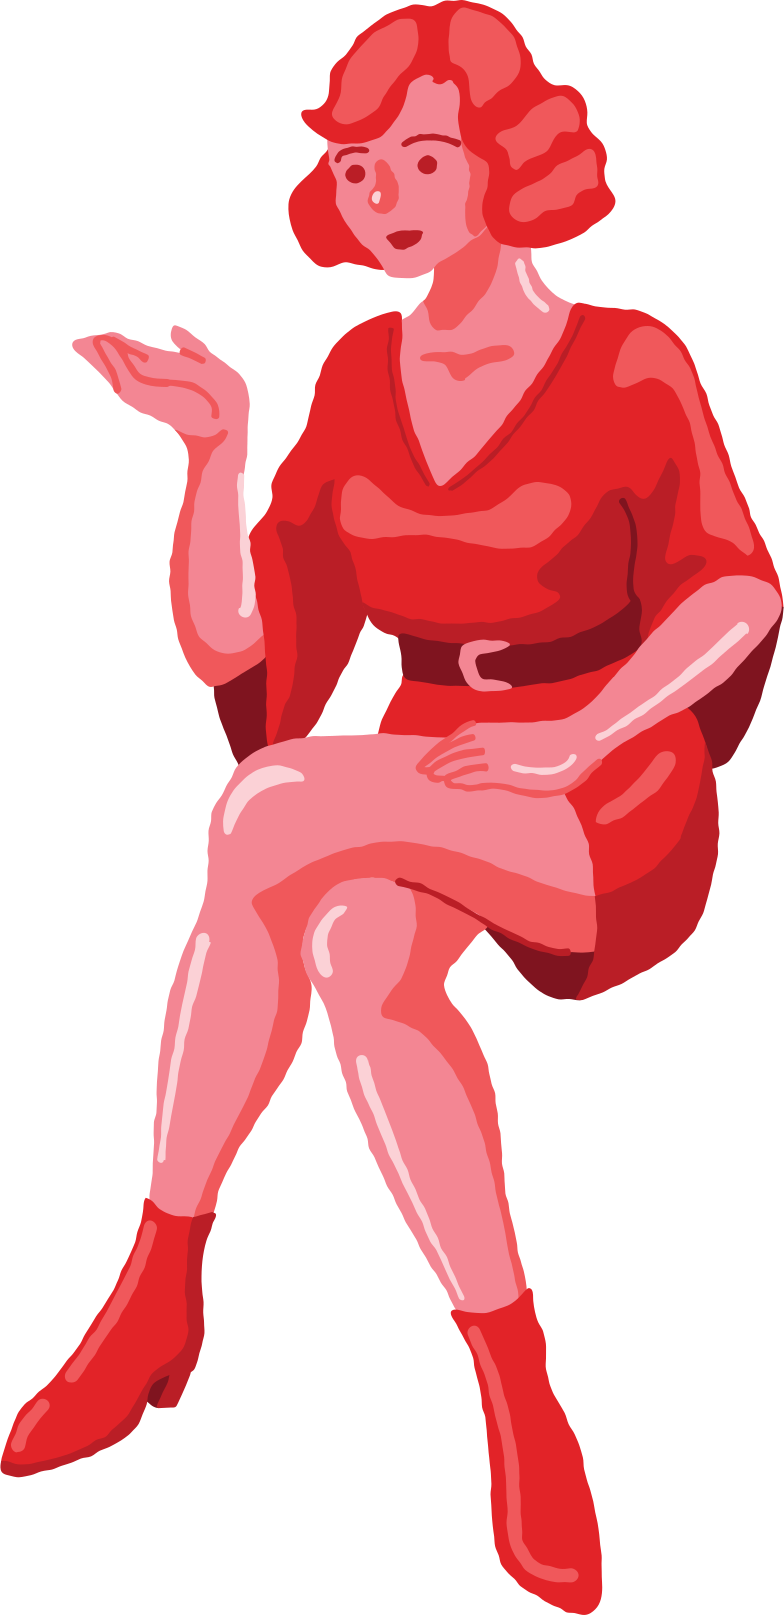 woman sitting front Clipart illustration in PNG, SVG